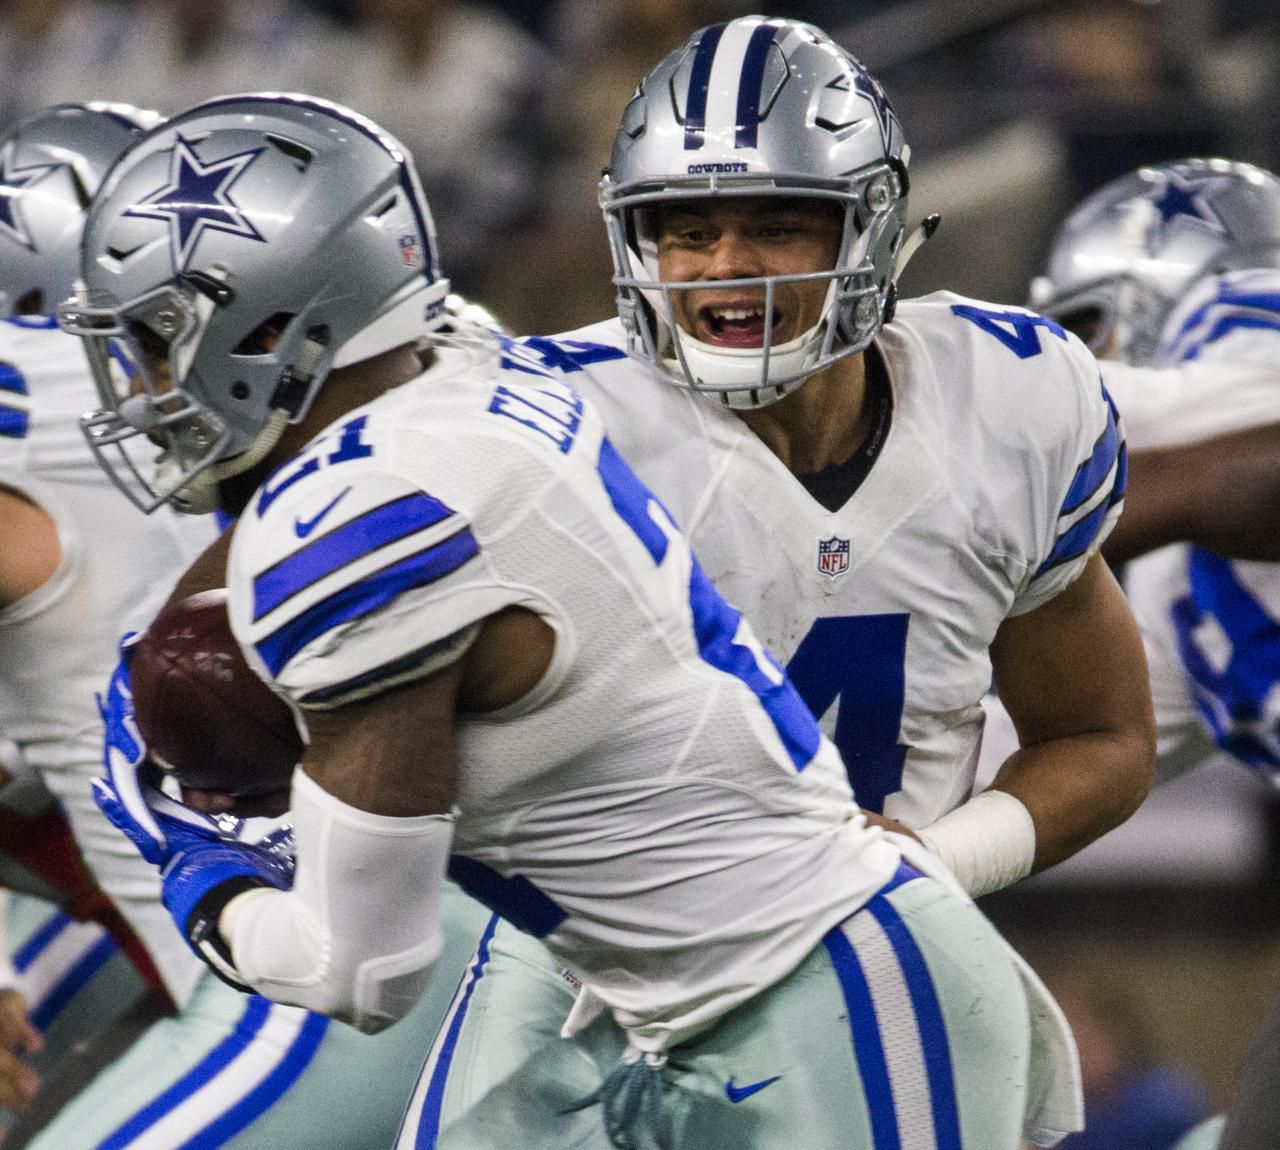 Dak Prescott (4) y Ezekiel Elliott (21) son figuras de los Cowboys. (Staff Photographer/Ashley Landis)